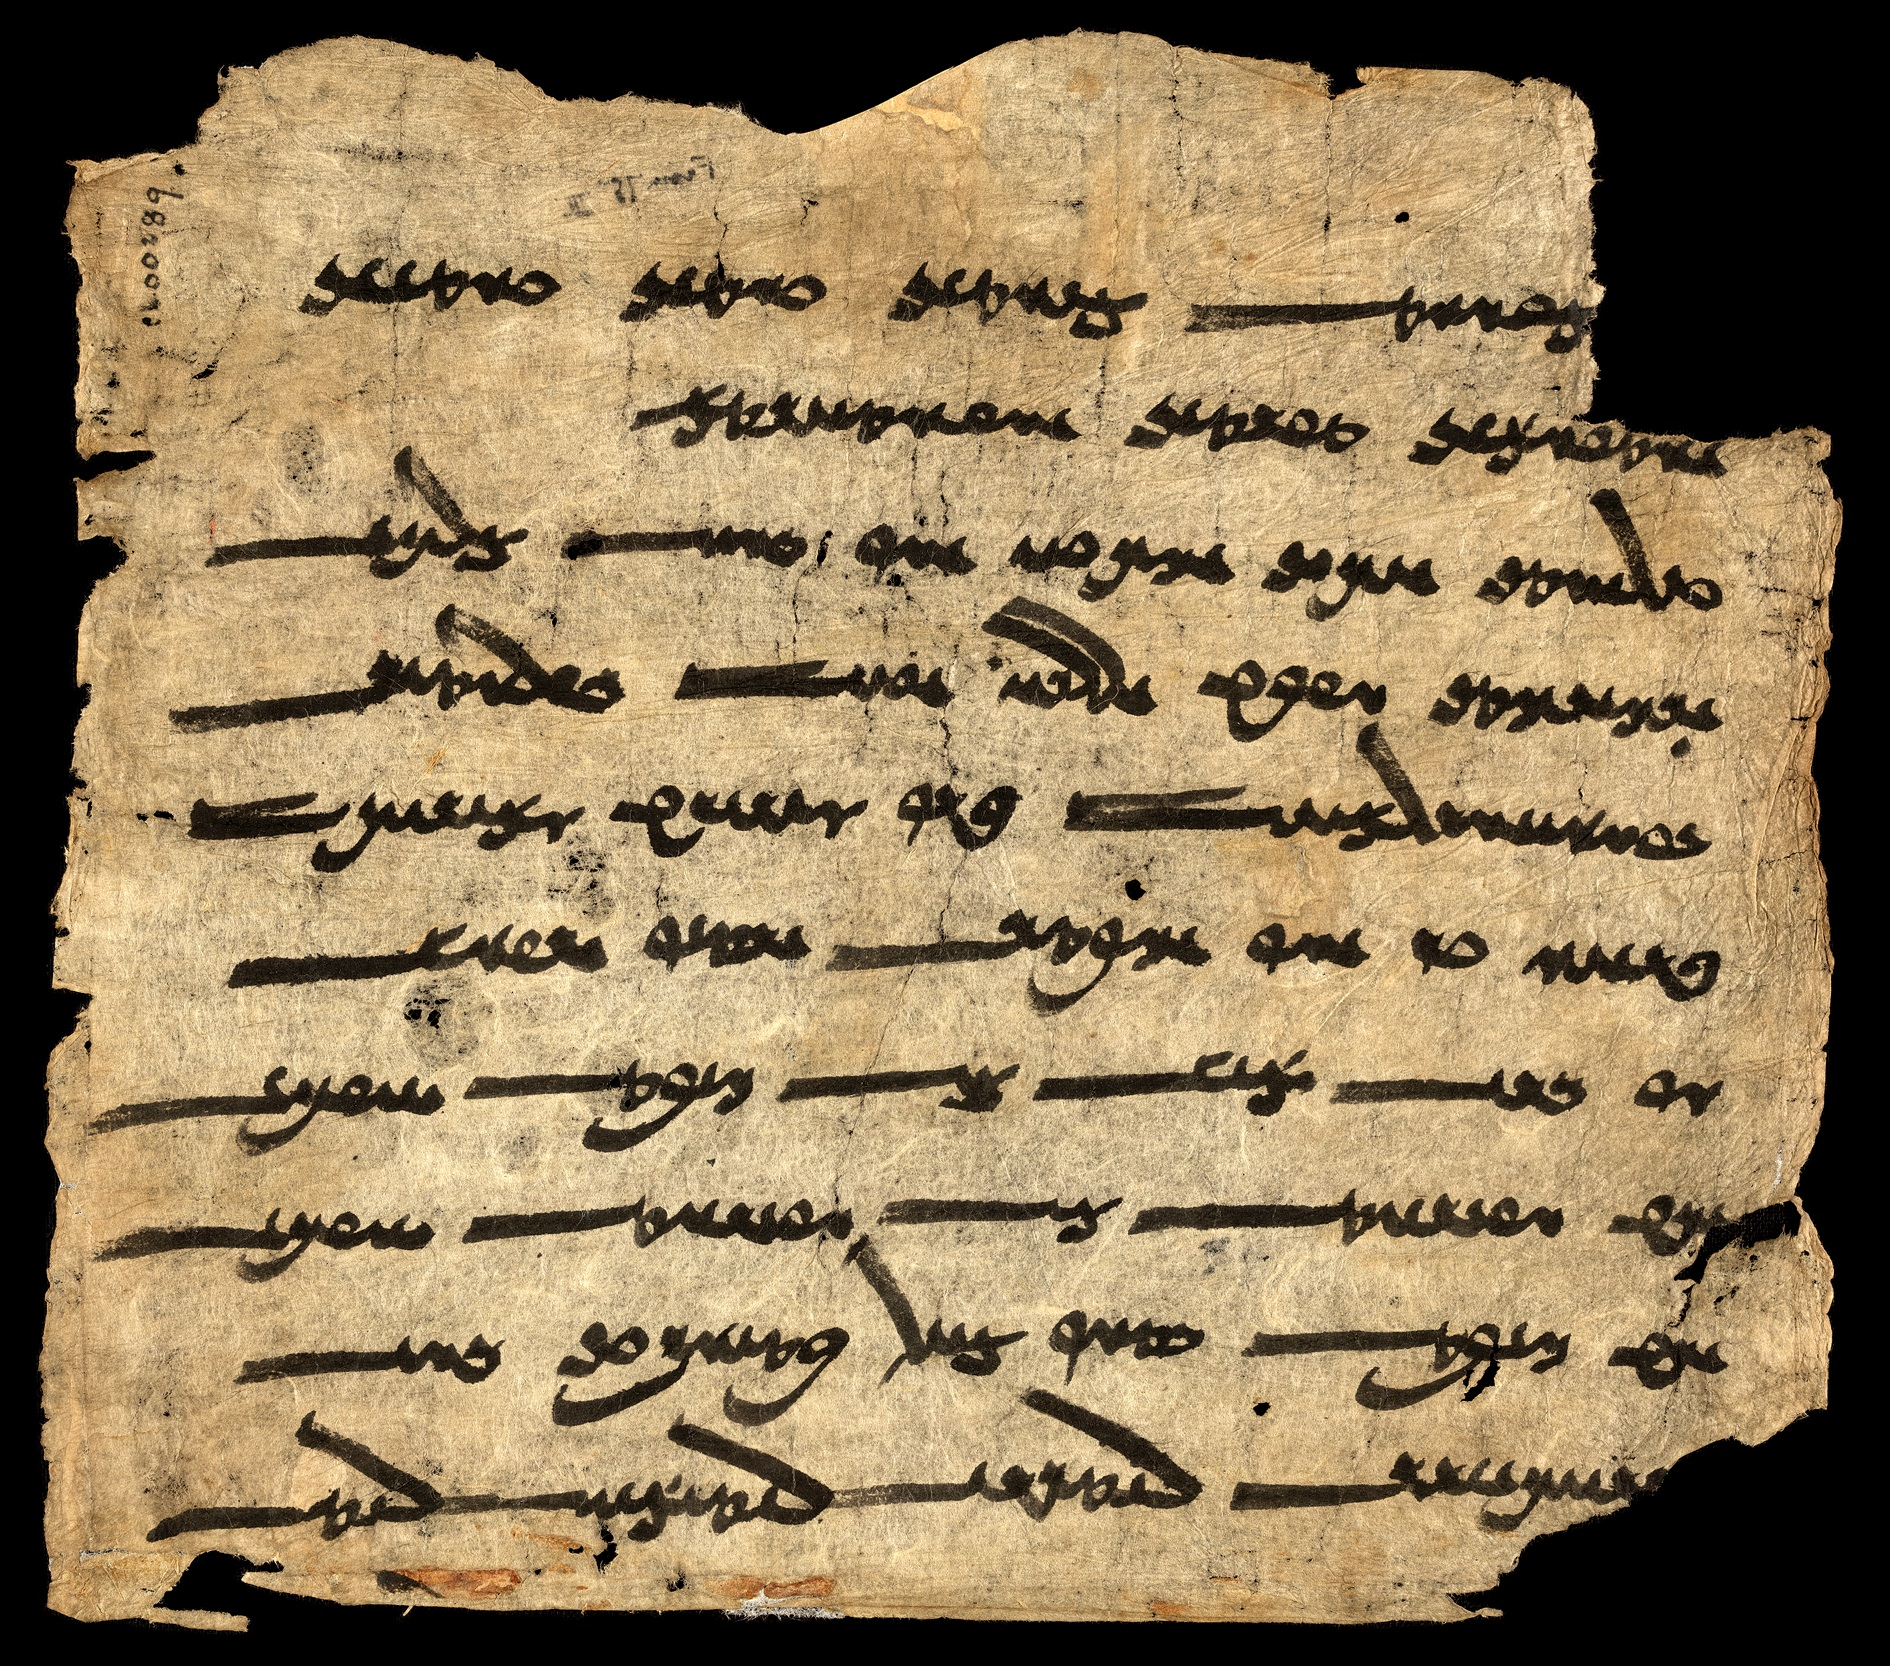 A copy of the world's oldest Zoroastrian manuscript, the Ashem Vohu, dating from the 9th century. Copyright: British Library Board